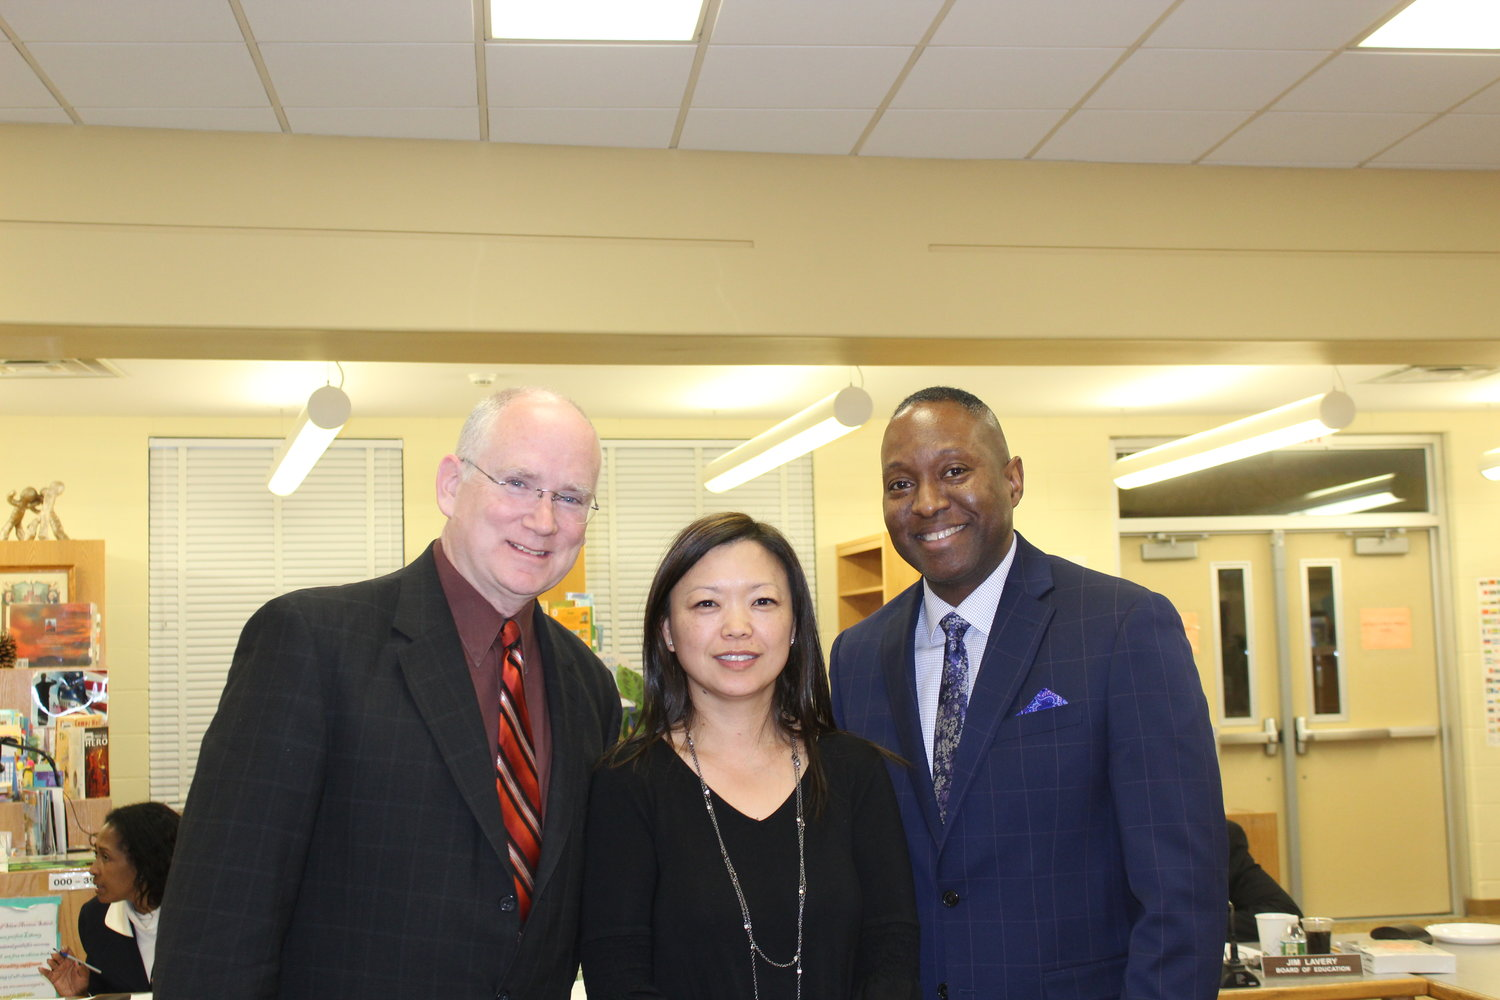 Clear Stream Avenue Assistant Principal Yannie Chon, center, and Principal John Singleton, right, were honored for receiving the Lowe's Toolbox for Education grant. They are with Board President Kenneth Cummings.